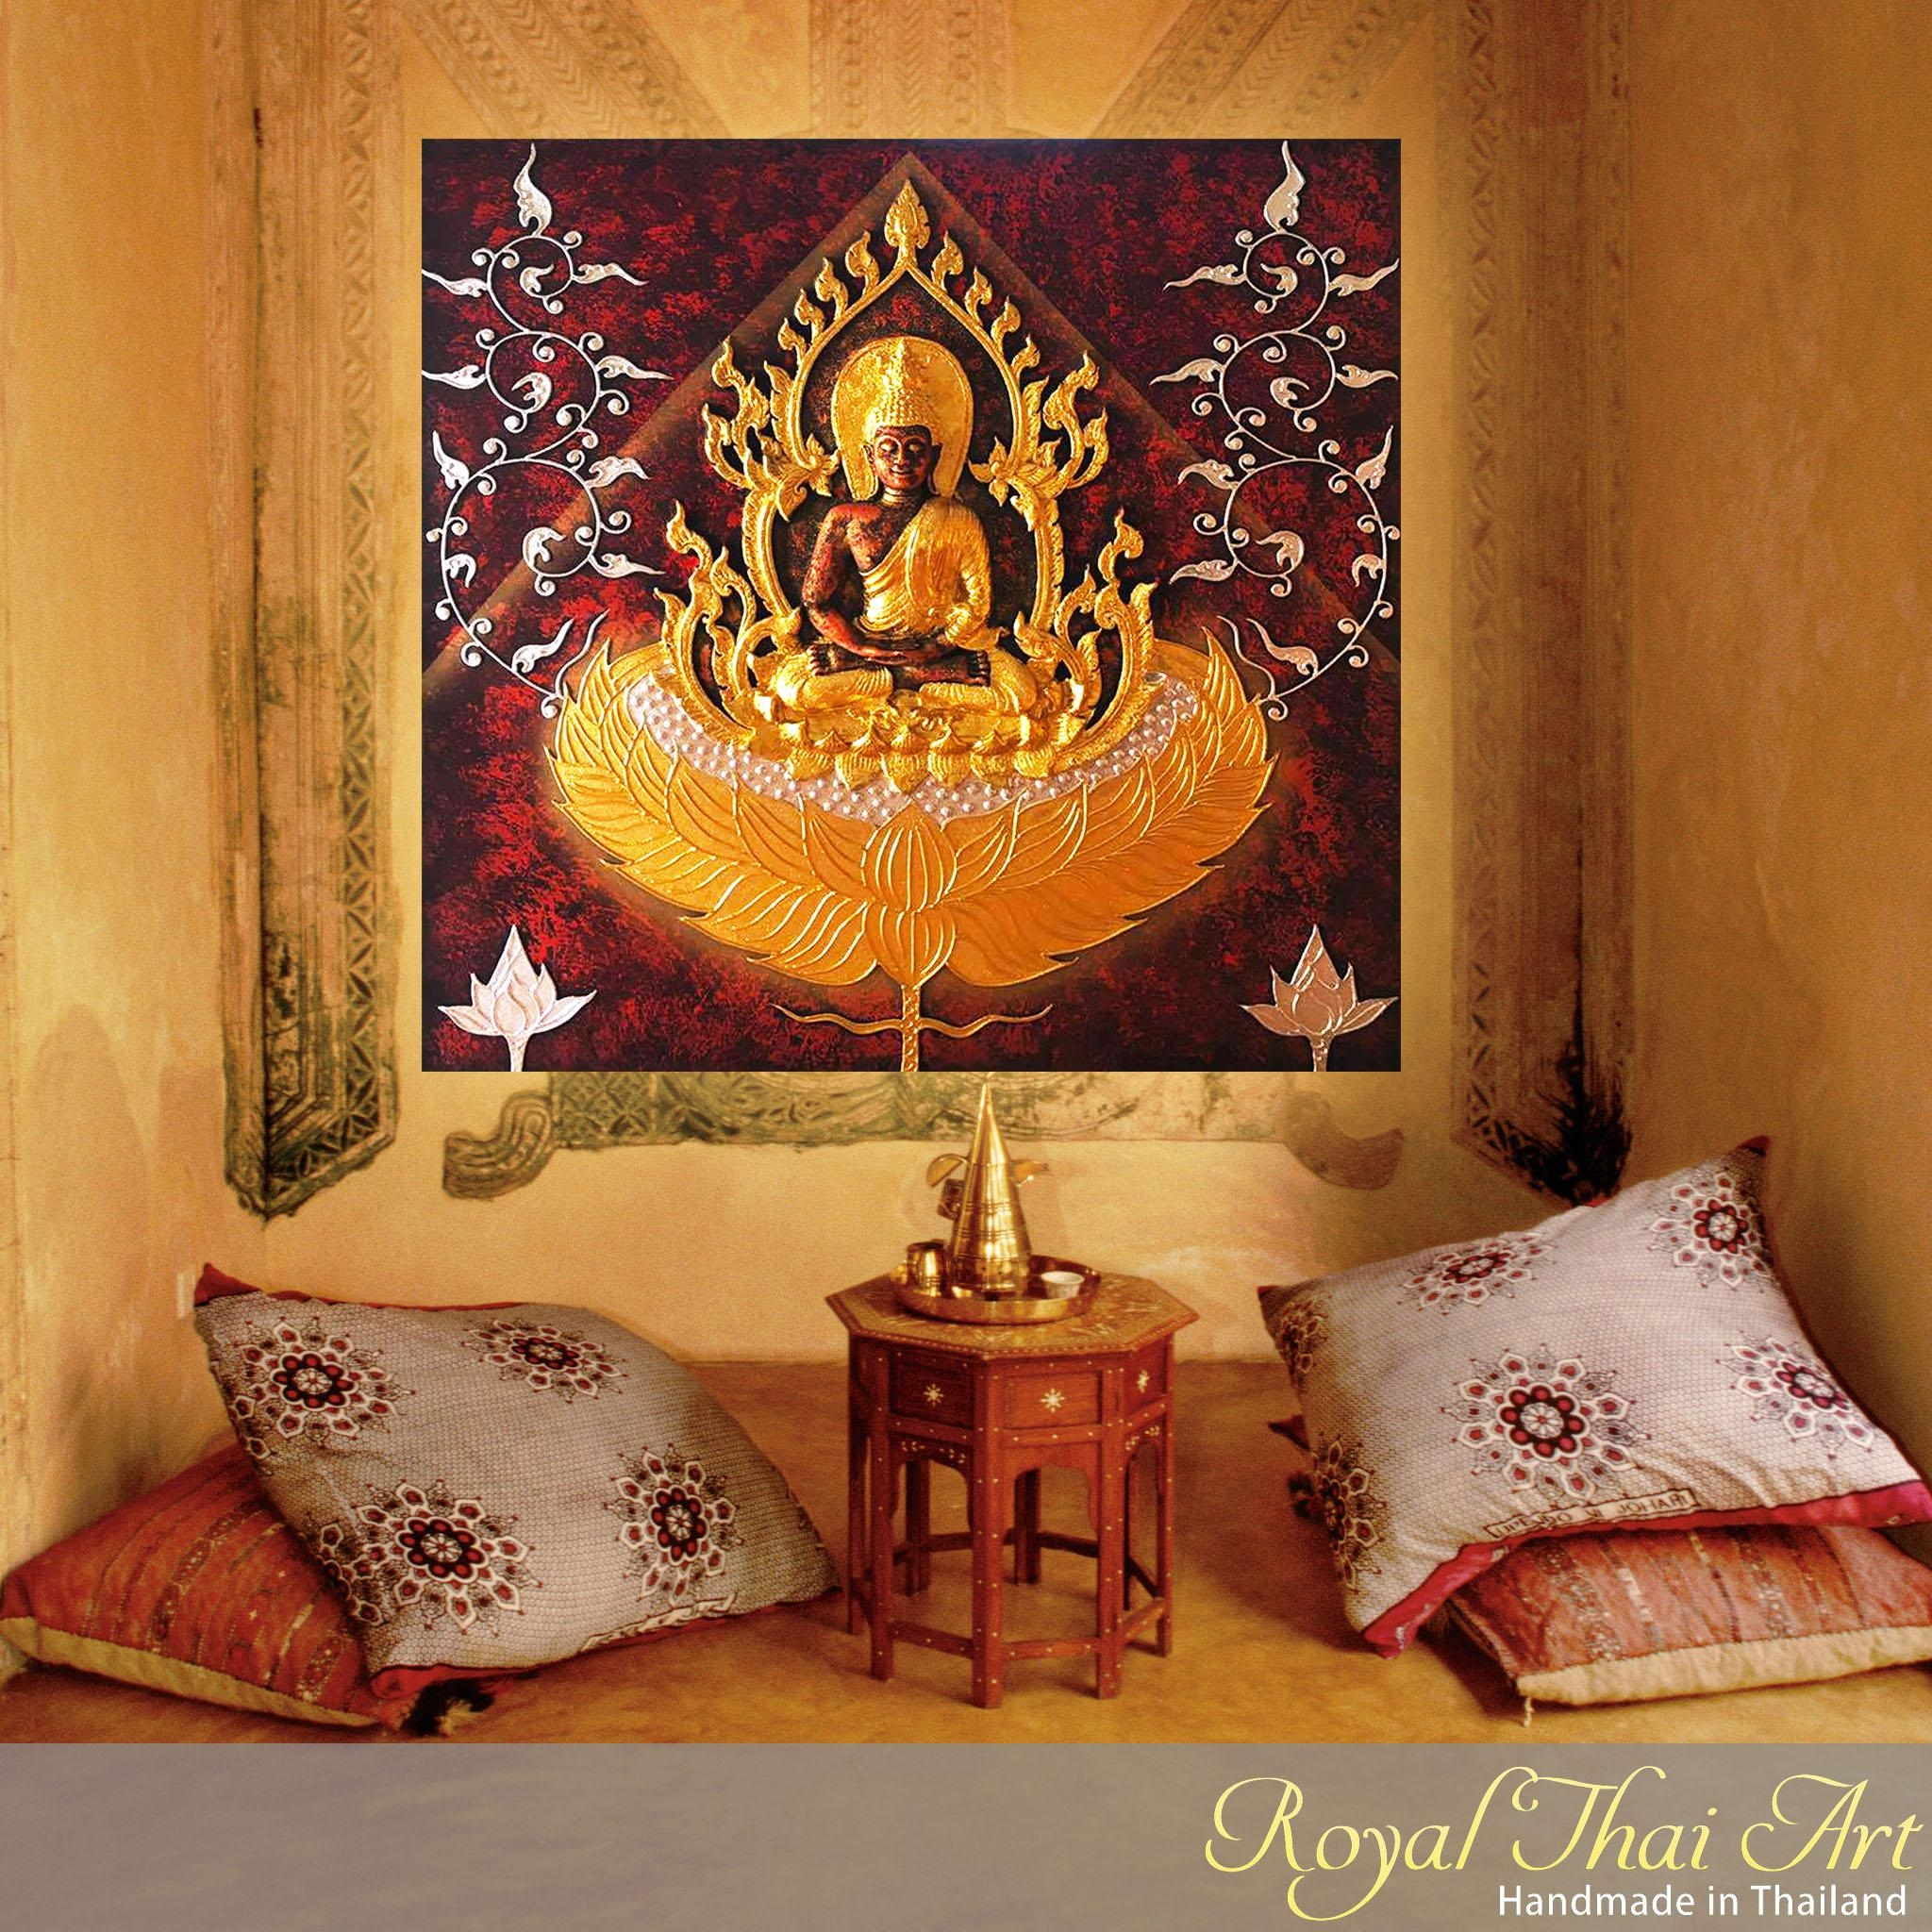 Buddha Painting 3D Handmade Gold Statue | Royal Thai Art Throughout Buddha Wood Wall Art (Image 3 of 20)